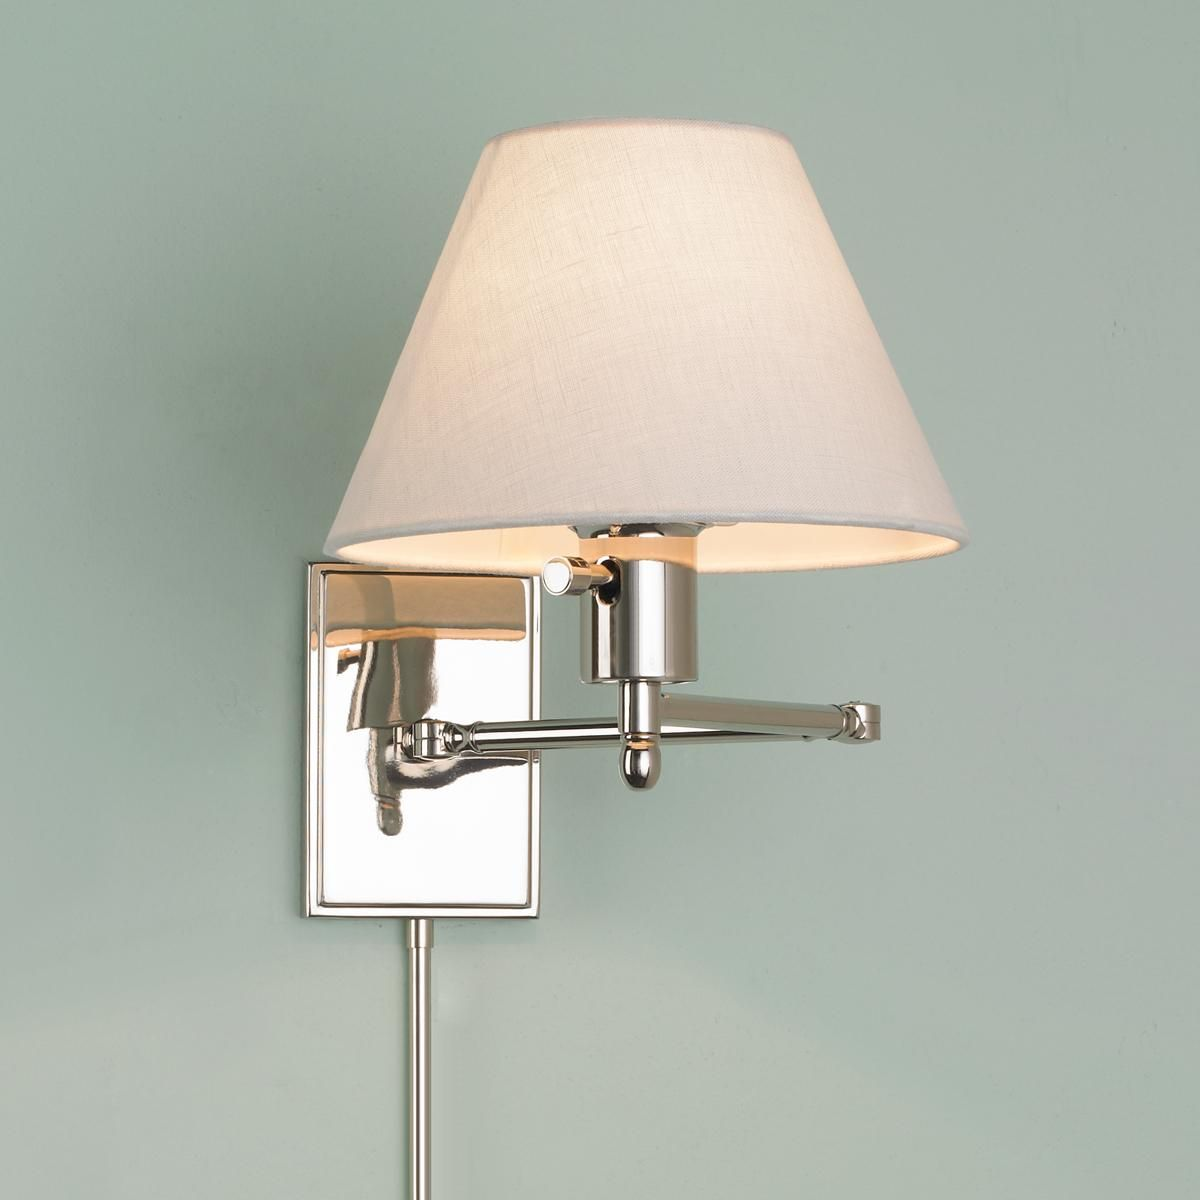 Simply Divine Swing Arm Wall Lamp Master Bedroom Swing Arm Wall